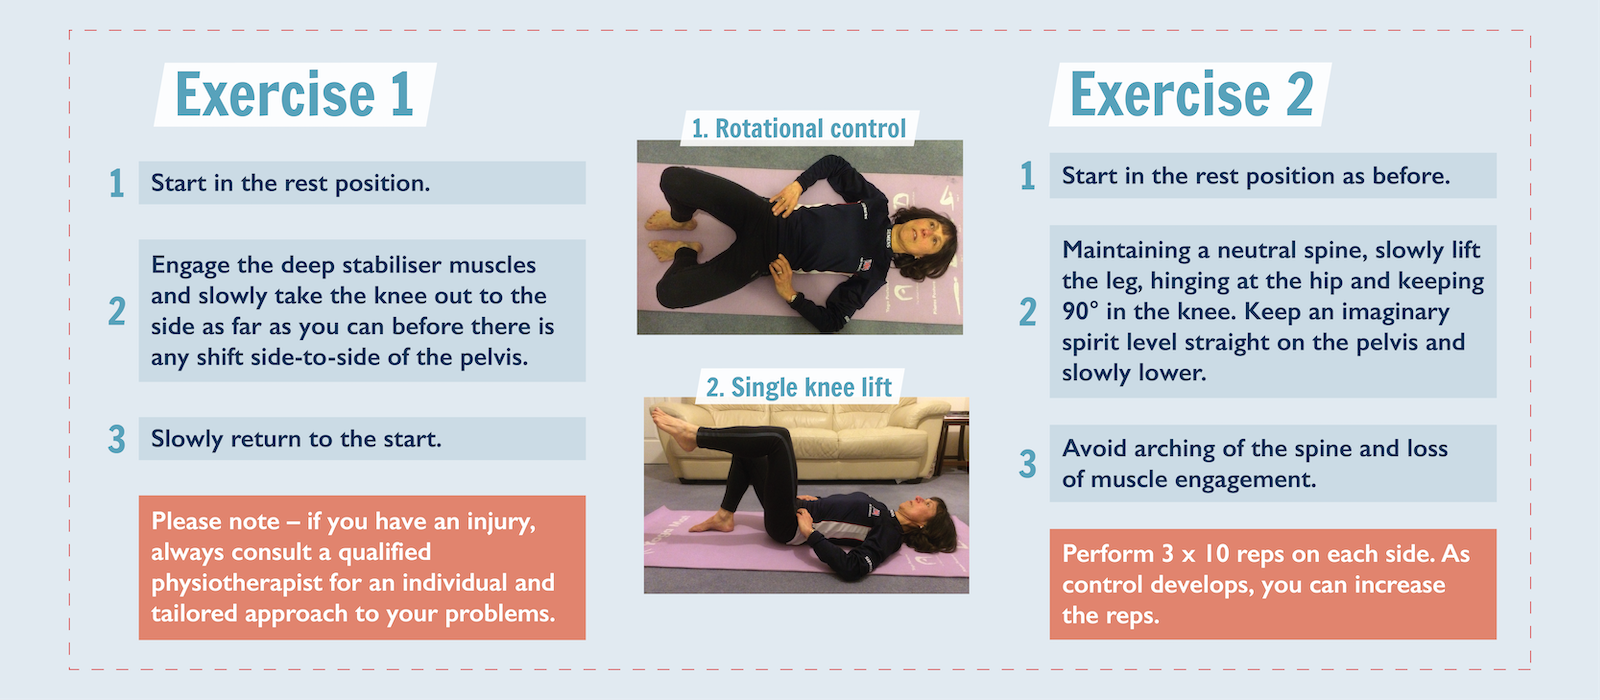 A graphic explaining how to perform two exercises; the rotational control and the single knee lift. Rotational control: A photograph of a lady lying on her back, knees bent and feet on the floor, pushing her knees outwards. Start in the rest position, engage the deep stabiliser muscles and slowly take the knee out to the side as far as you can before there is any shift side-to-side of the pelvis. Slowly return to the start. Please note – if you have an injury, always consult a qualified physiotherapist for an individual and tailored approach to your problems. The single knee lift: A photograph of a lady lying on her back, knees bent with one foot on the floor and the other facing outwards with her knee at a right angle. Start in the same position as before. Maintaining a neutral spine, slowly lift the leg, hinging at the hip and keeping 90° in the knee. Keep an imaginary spirit level straight on the pelvis and slowly lower. Avoid arching of the spine and loss of muscle engagement. Perform 3 x 10 reps on each side. As control develops, you can increase the reps.